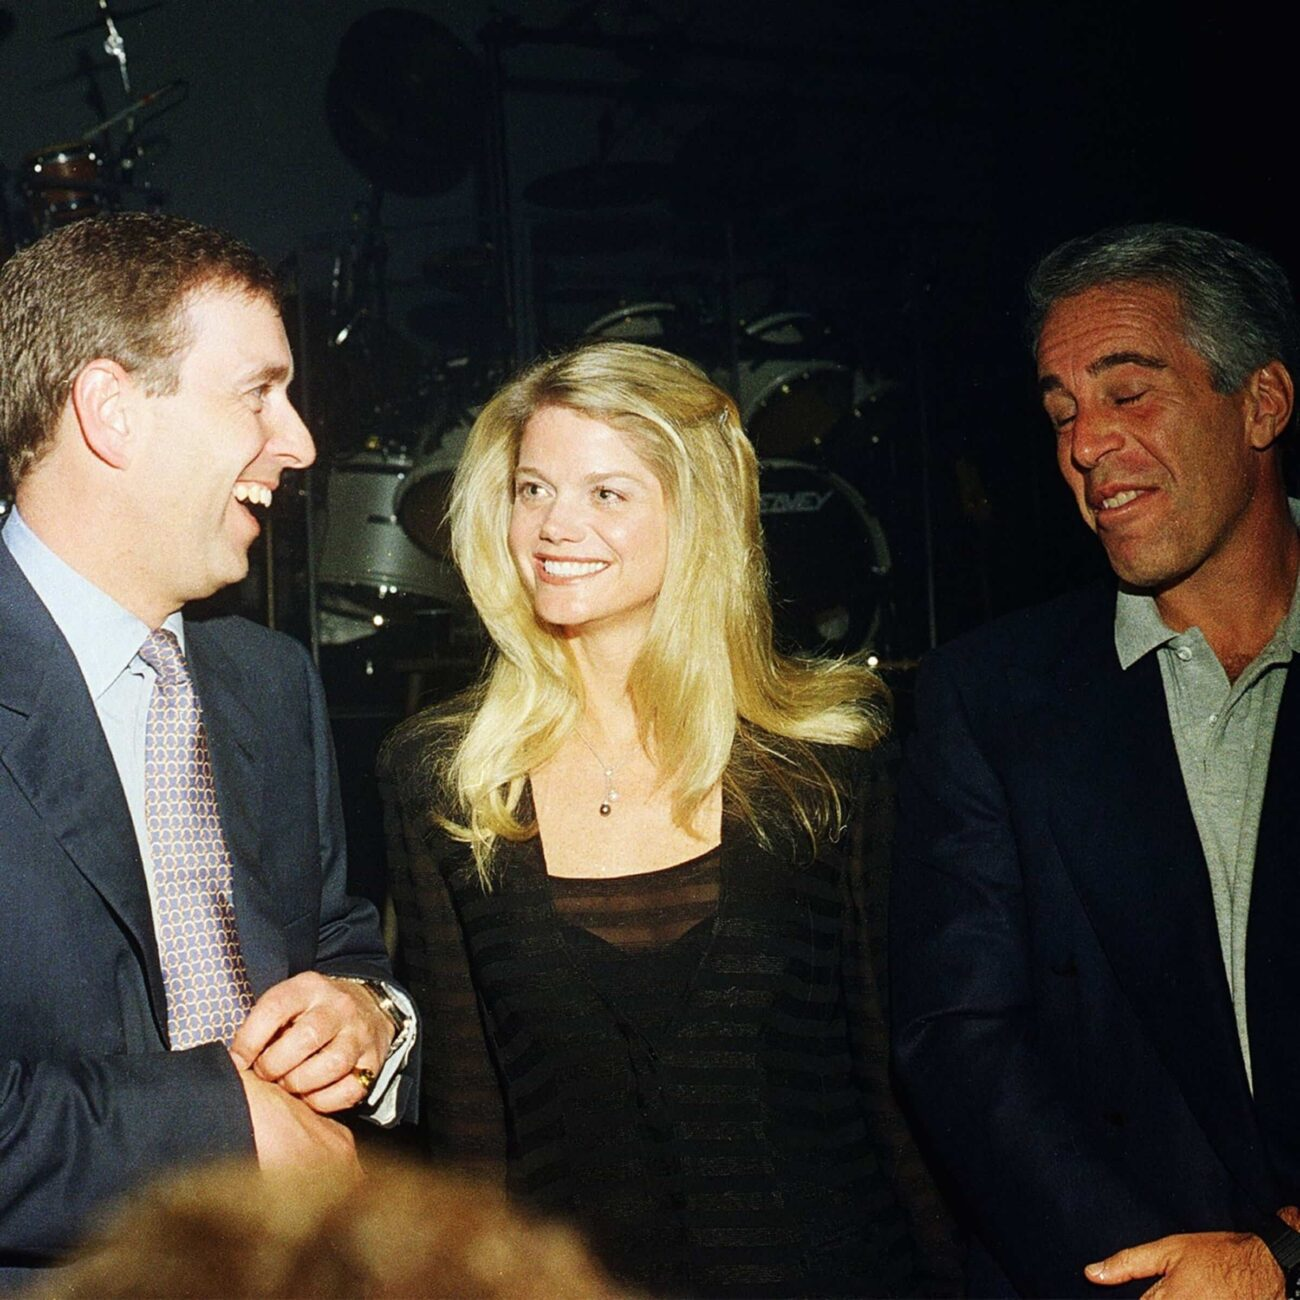 Were Prince Andrew and Jeffrey Epstein partners in crime? Find out if their friendship is causing the Duke of York to lose his fortune with the latest info!